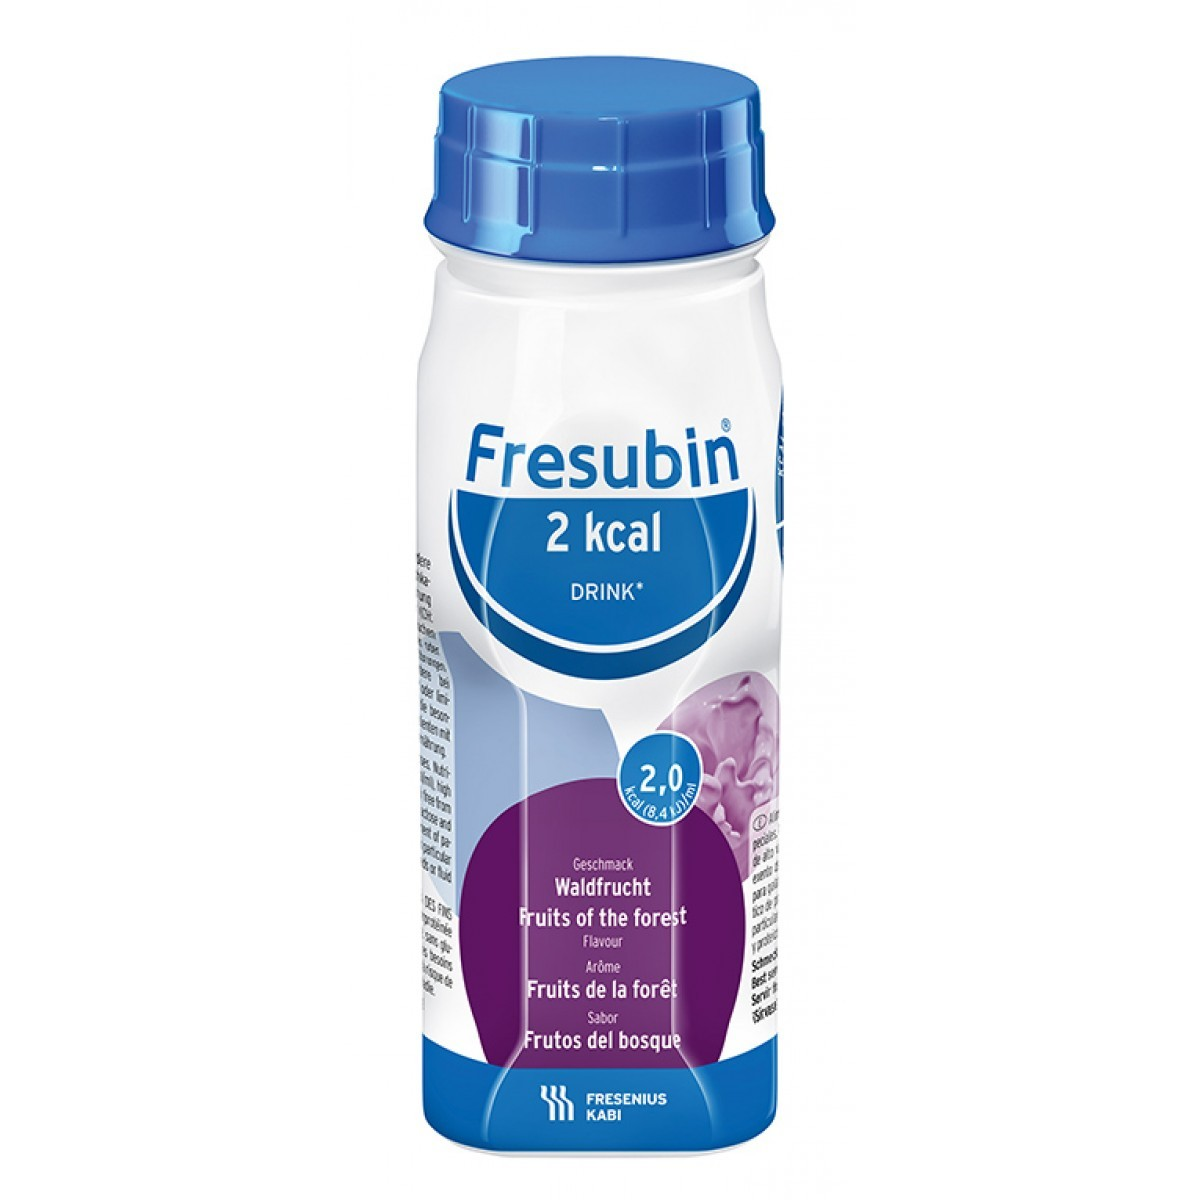 Fresubin 2 Kcal Drink Frutas da Floresta - 200 mL - (Fresenius)